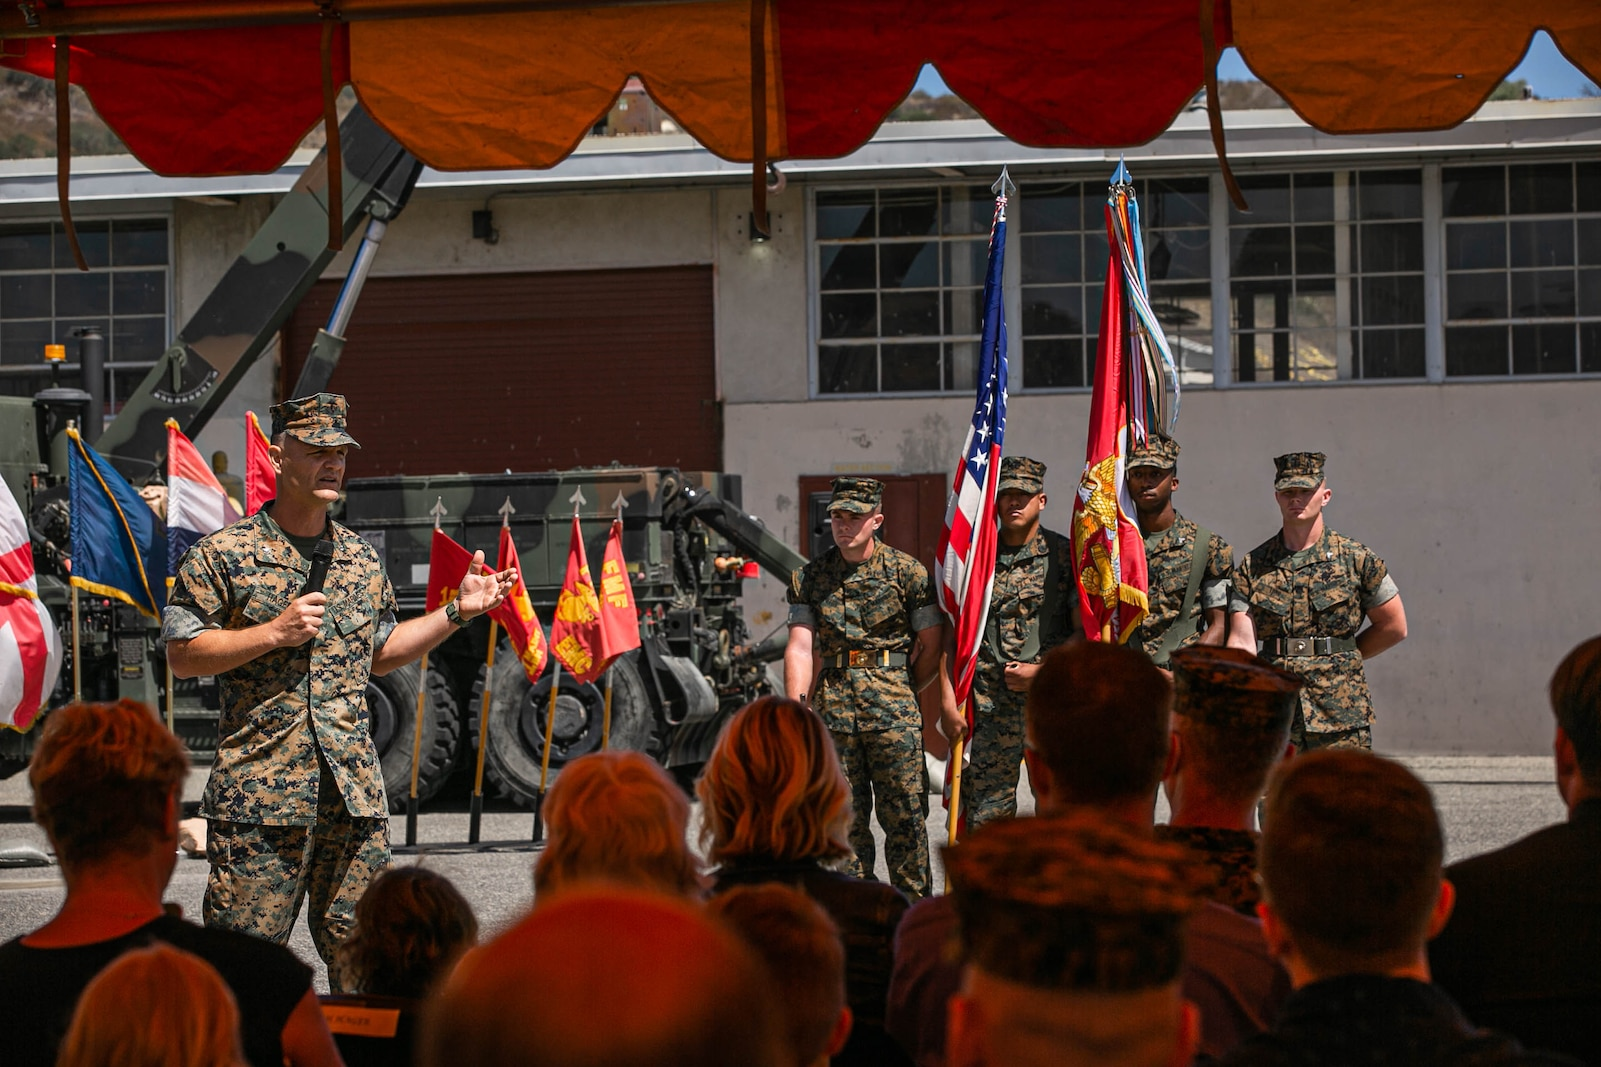 U.S. Marine Corps Lt. Col. Matt Hager, outgoing commanding officer, 1st Maintenance Battalion, gives remarks during the 1st Maint Bn change of command ceremony.